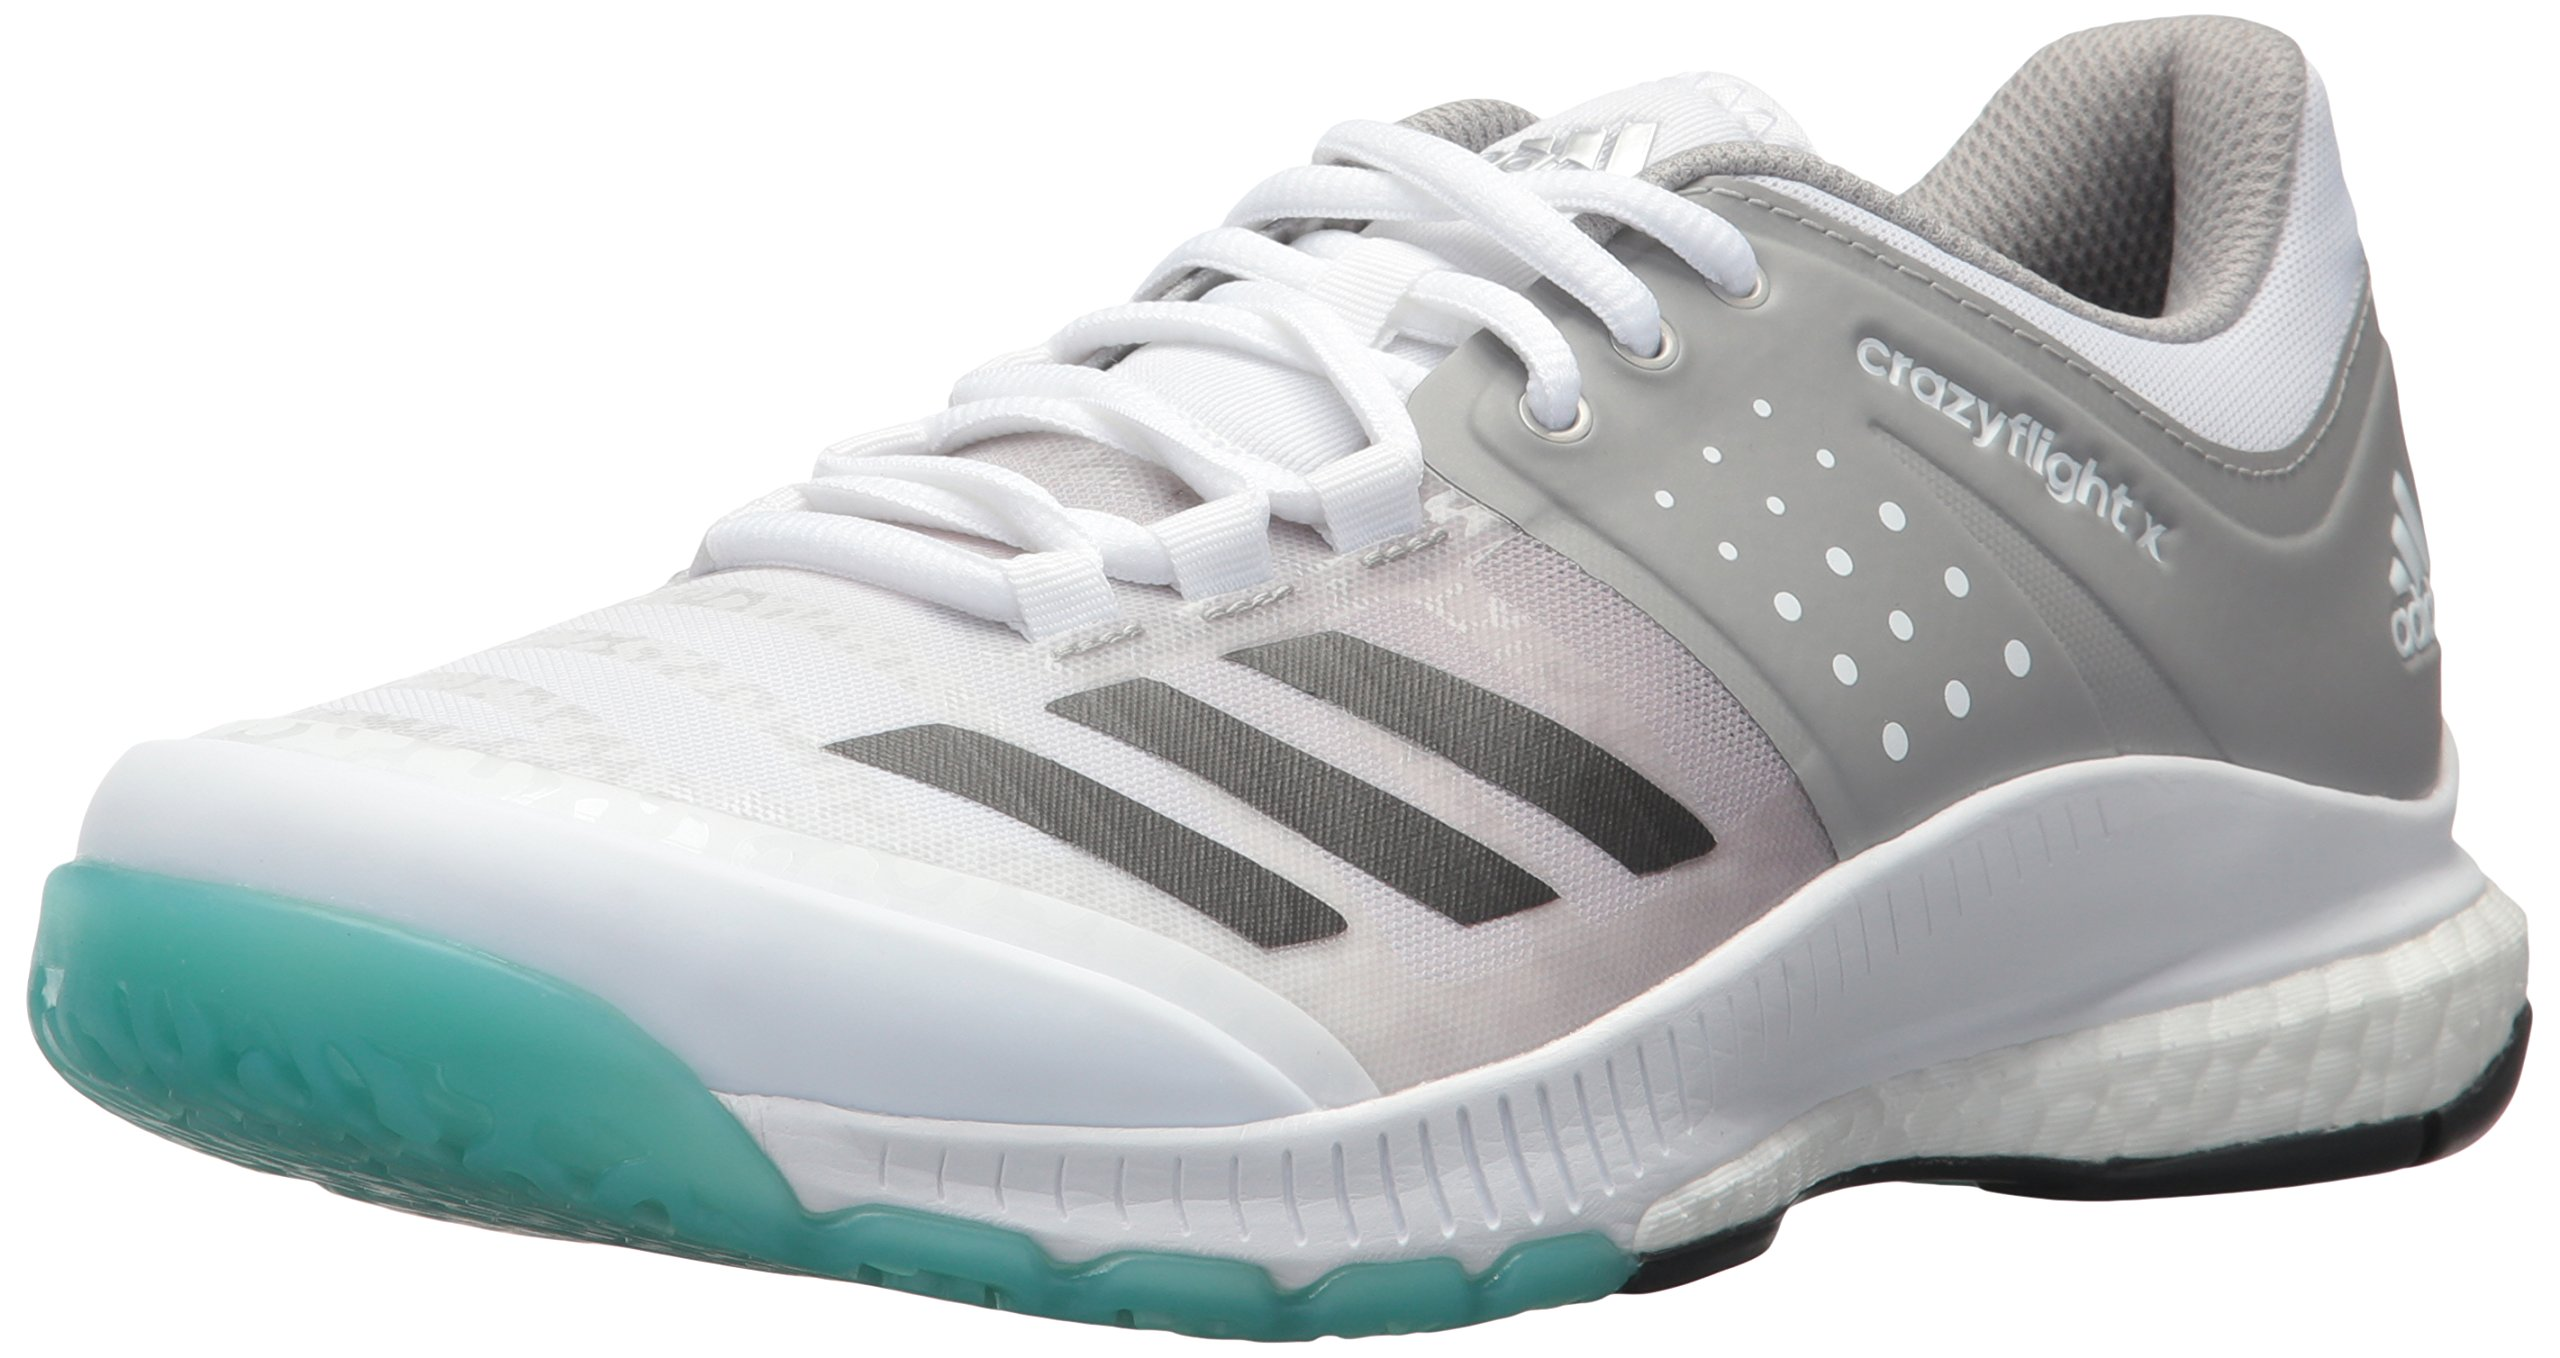 adidas Women's Crazyflight X Volleyball Shoe,White/Night Metallic/Grey,6.5 M US